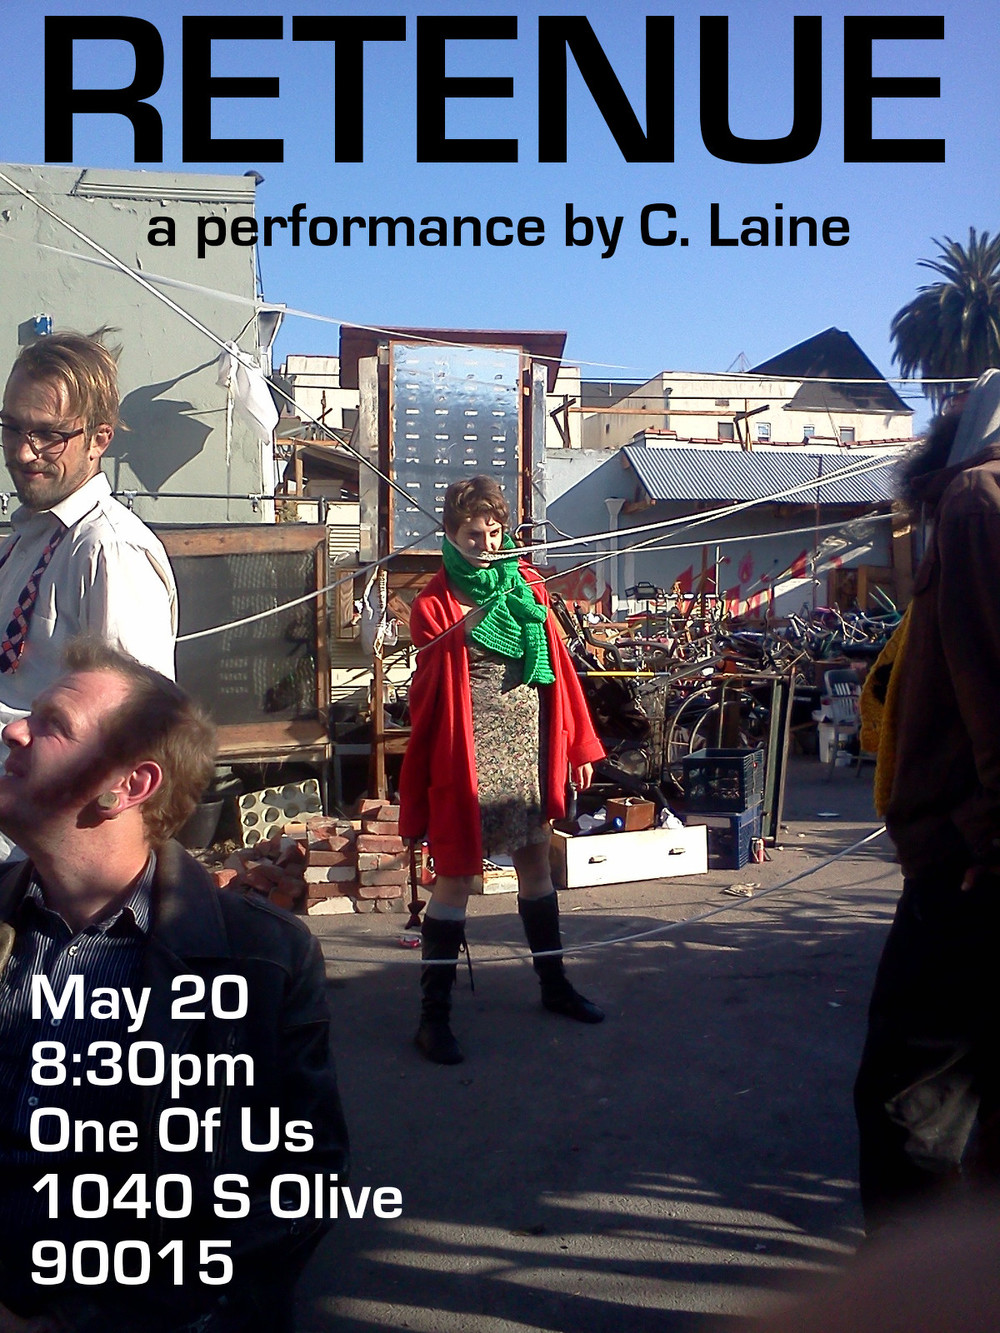 Retenue a performance by C. Laine May 20 8:30pm One Of Us 1040 S Olive 90015